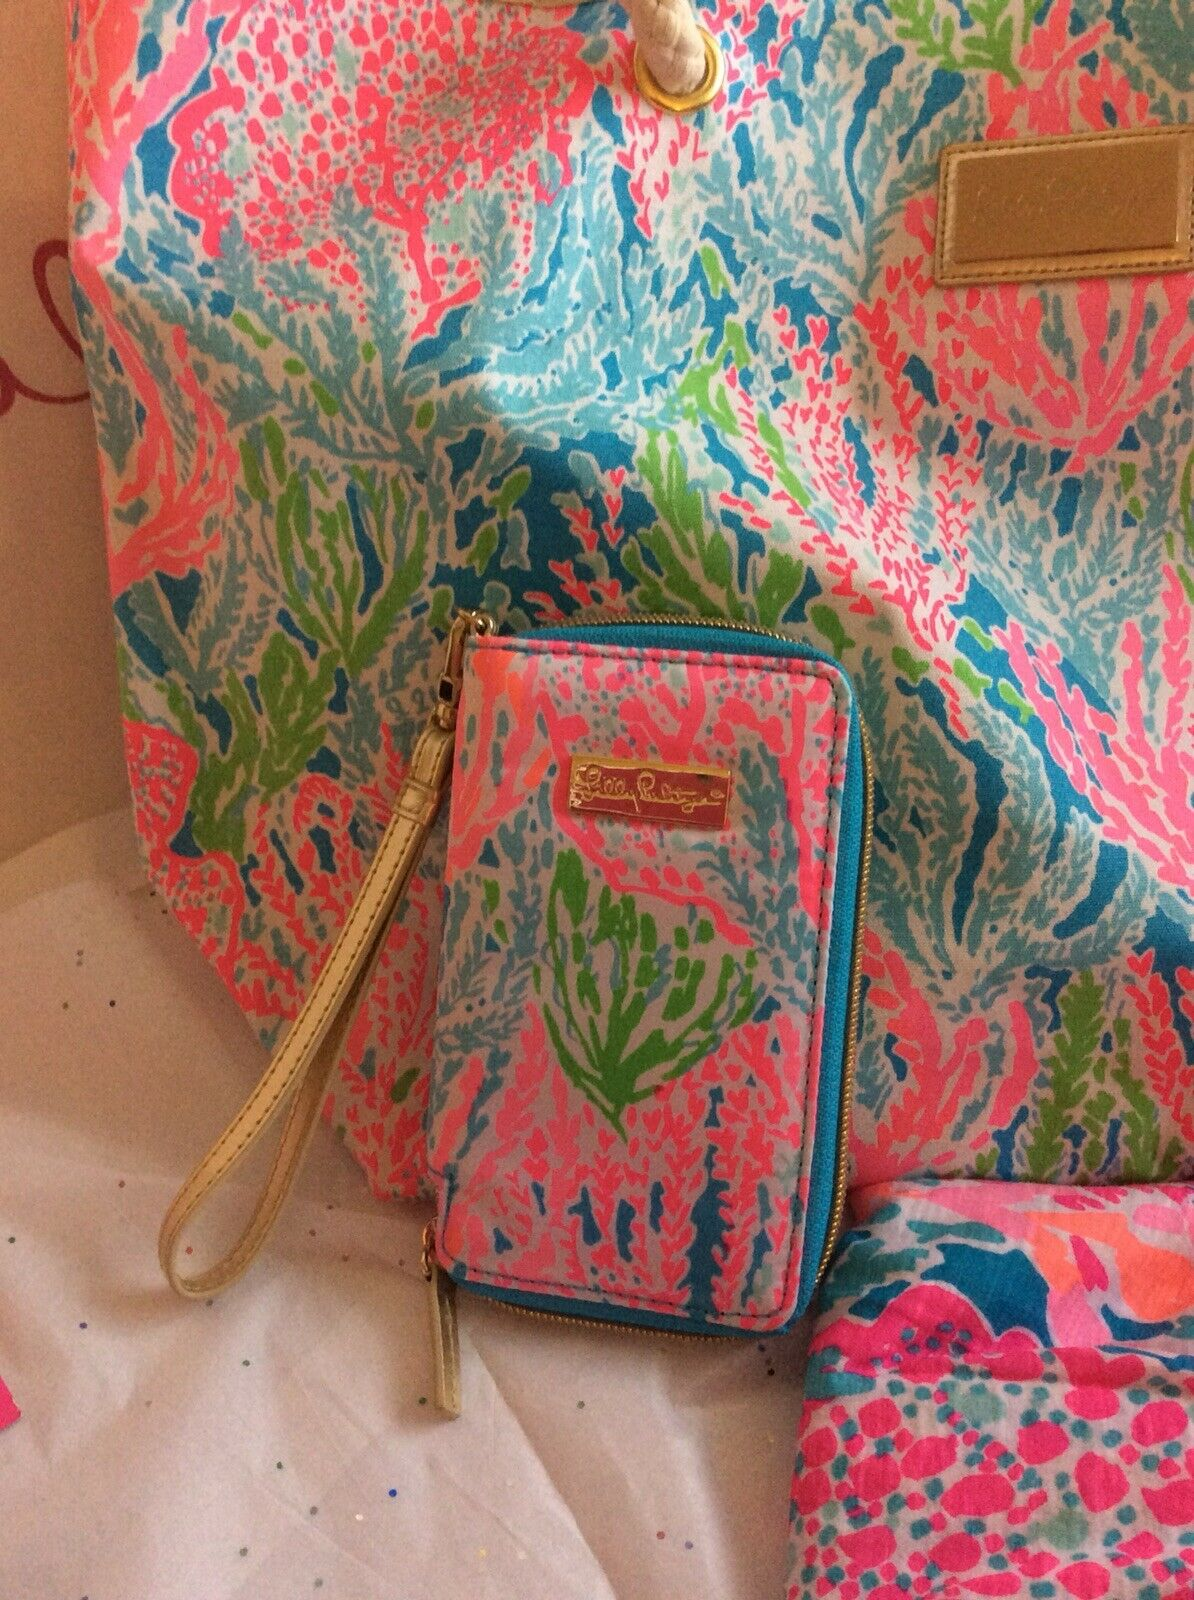 Lilly Pulitzer Lets Cha Cha  Wristlet NWOT